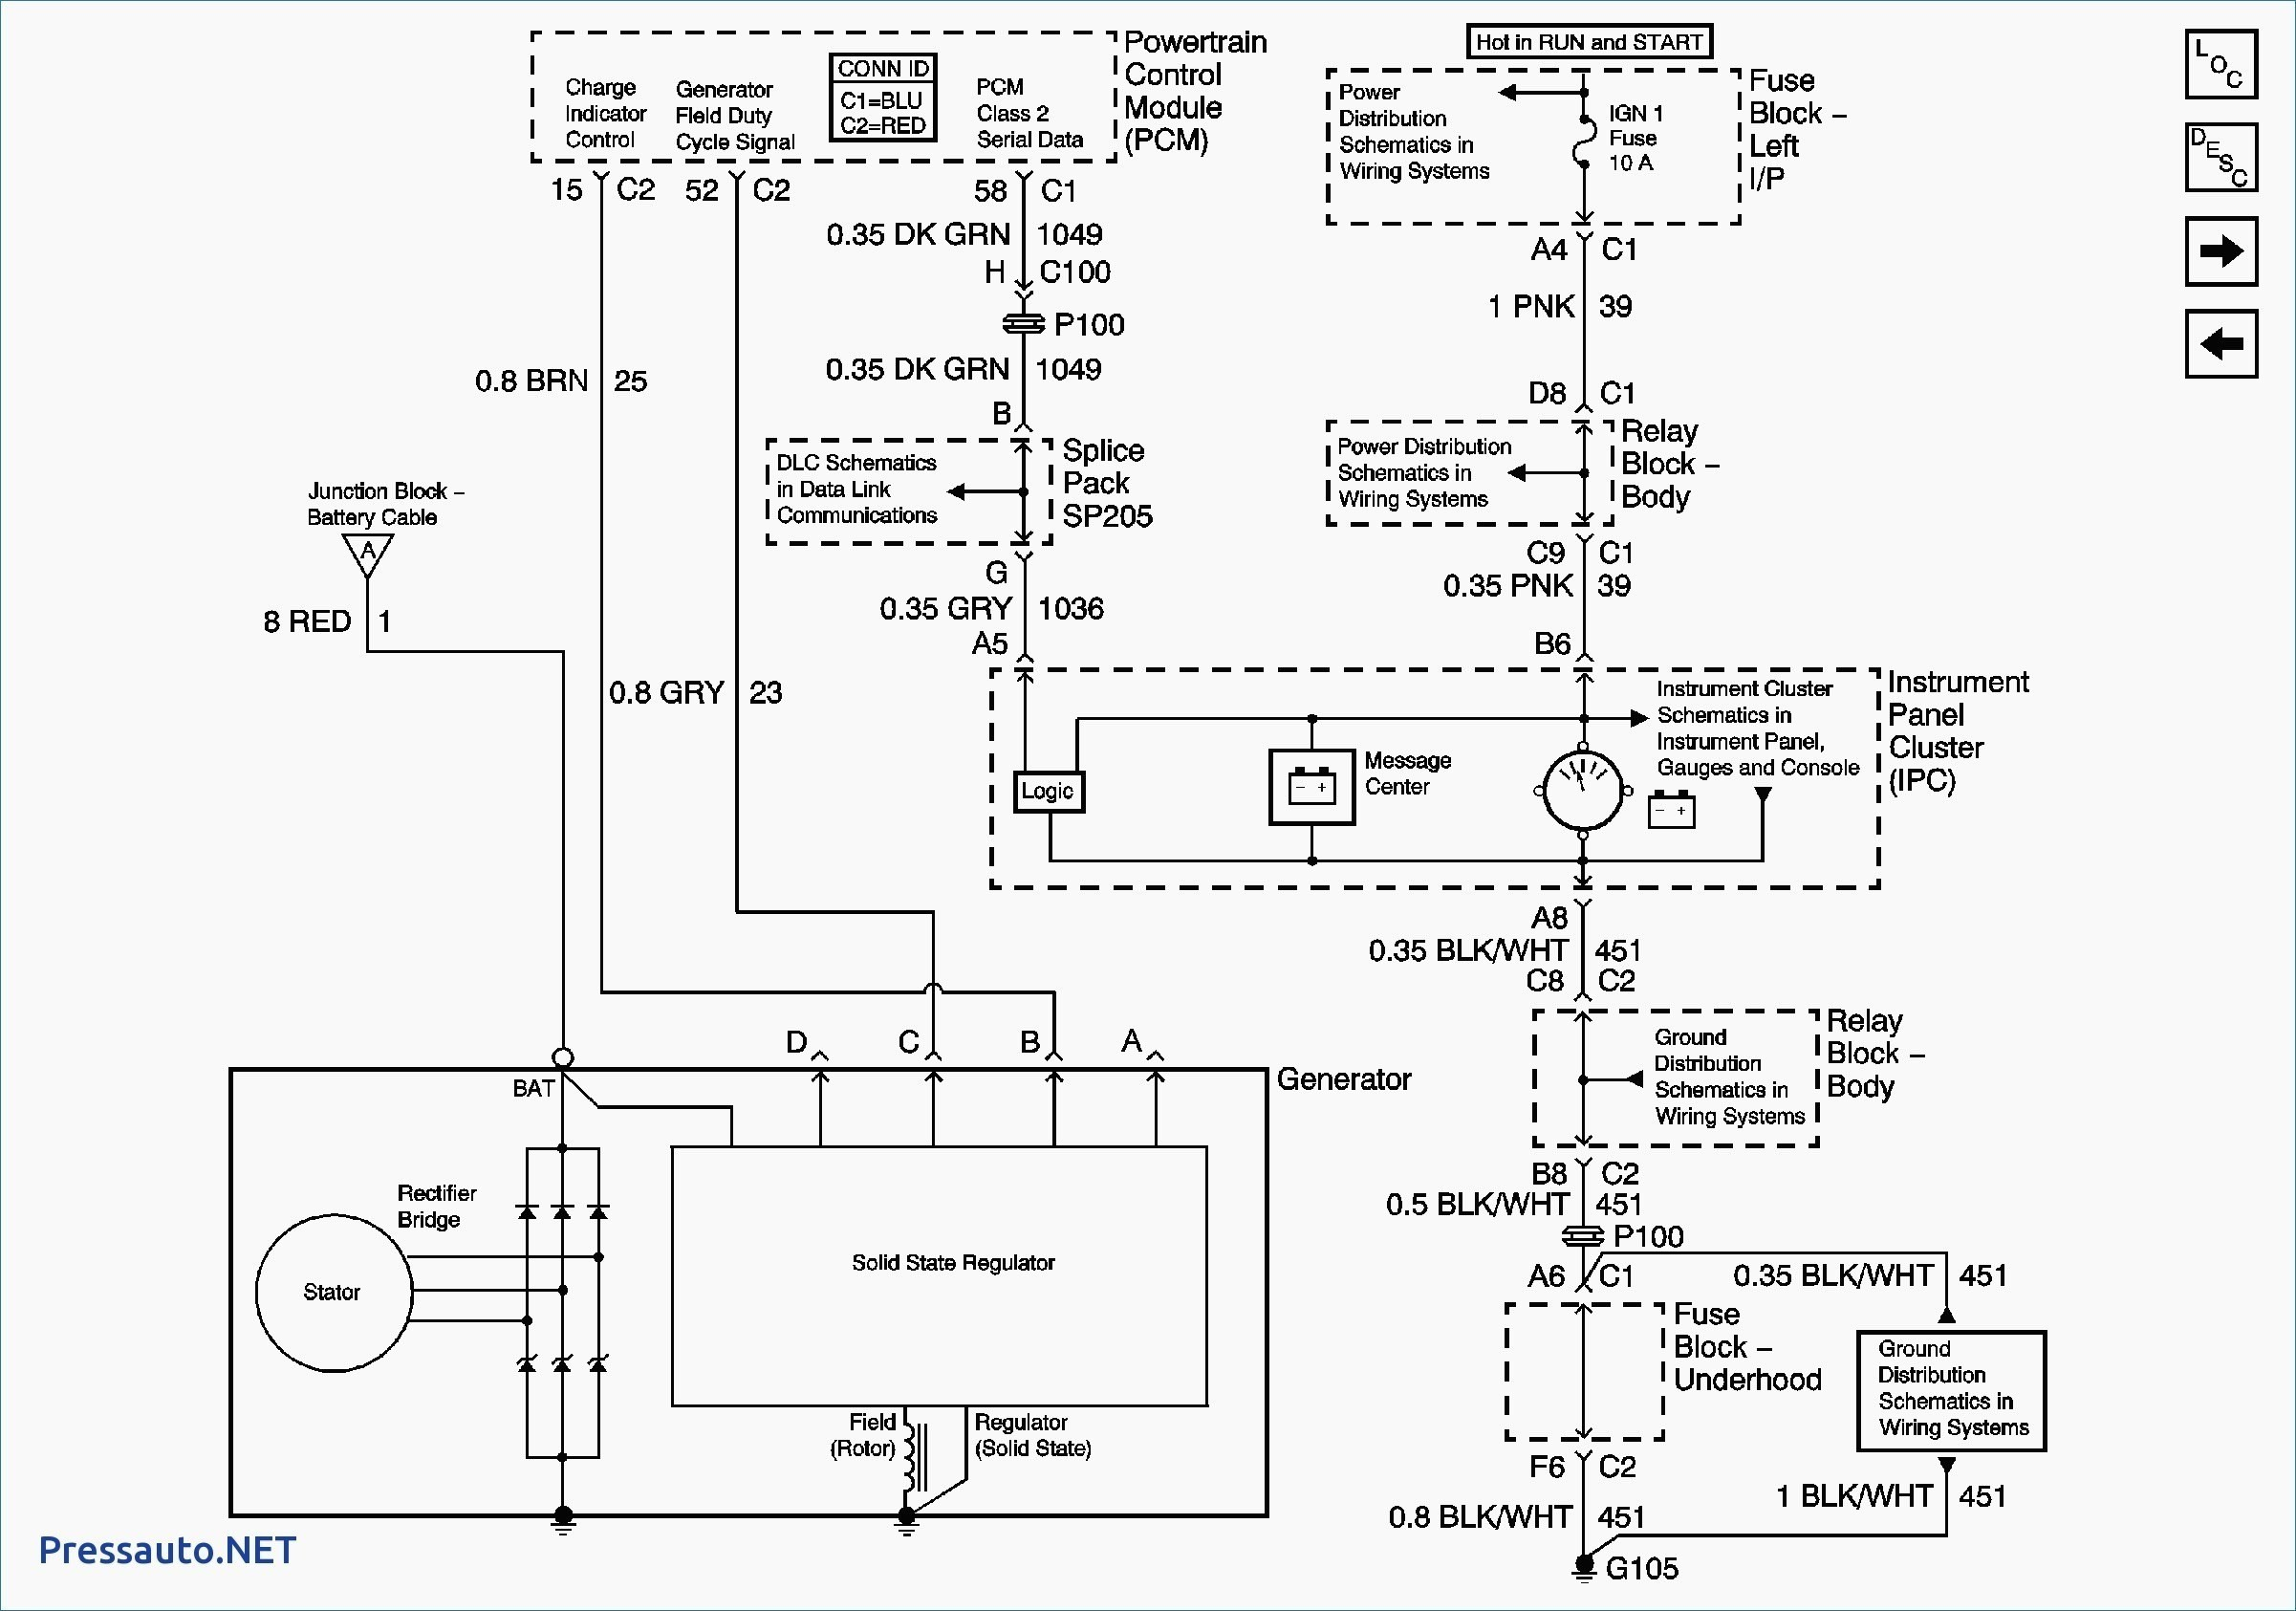 Car Alternator Voltage Regulator Circuit Diagram Bosch Alternator Wiring Diagram Holden Fresh Bosch Voltage Regulator Of Car Alternator Voltage Regulator Circuit Diagram Wiring Diagram for Marine Generator Best Battery In Circuit Diagram